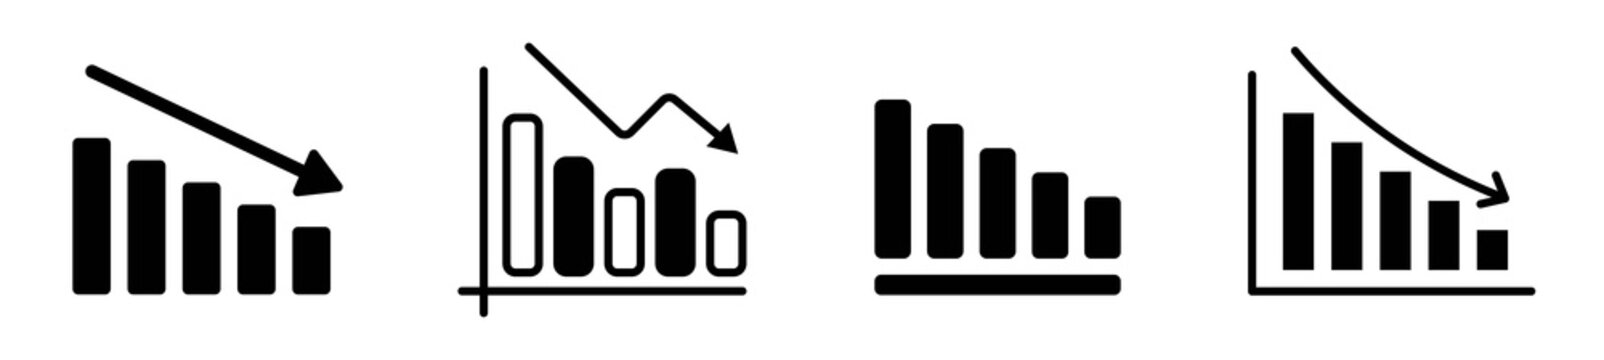 Set of loss modern icons, graph chart down icons, down arrow symbol in line style